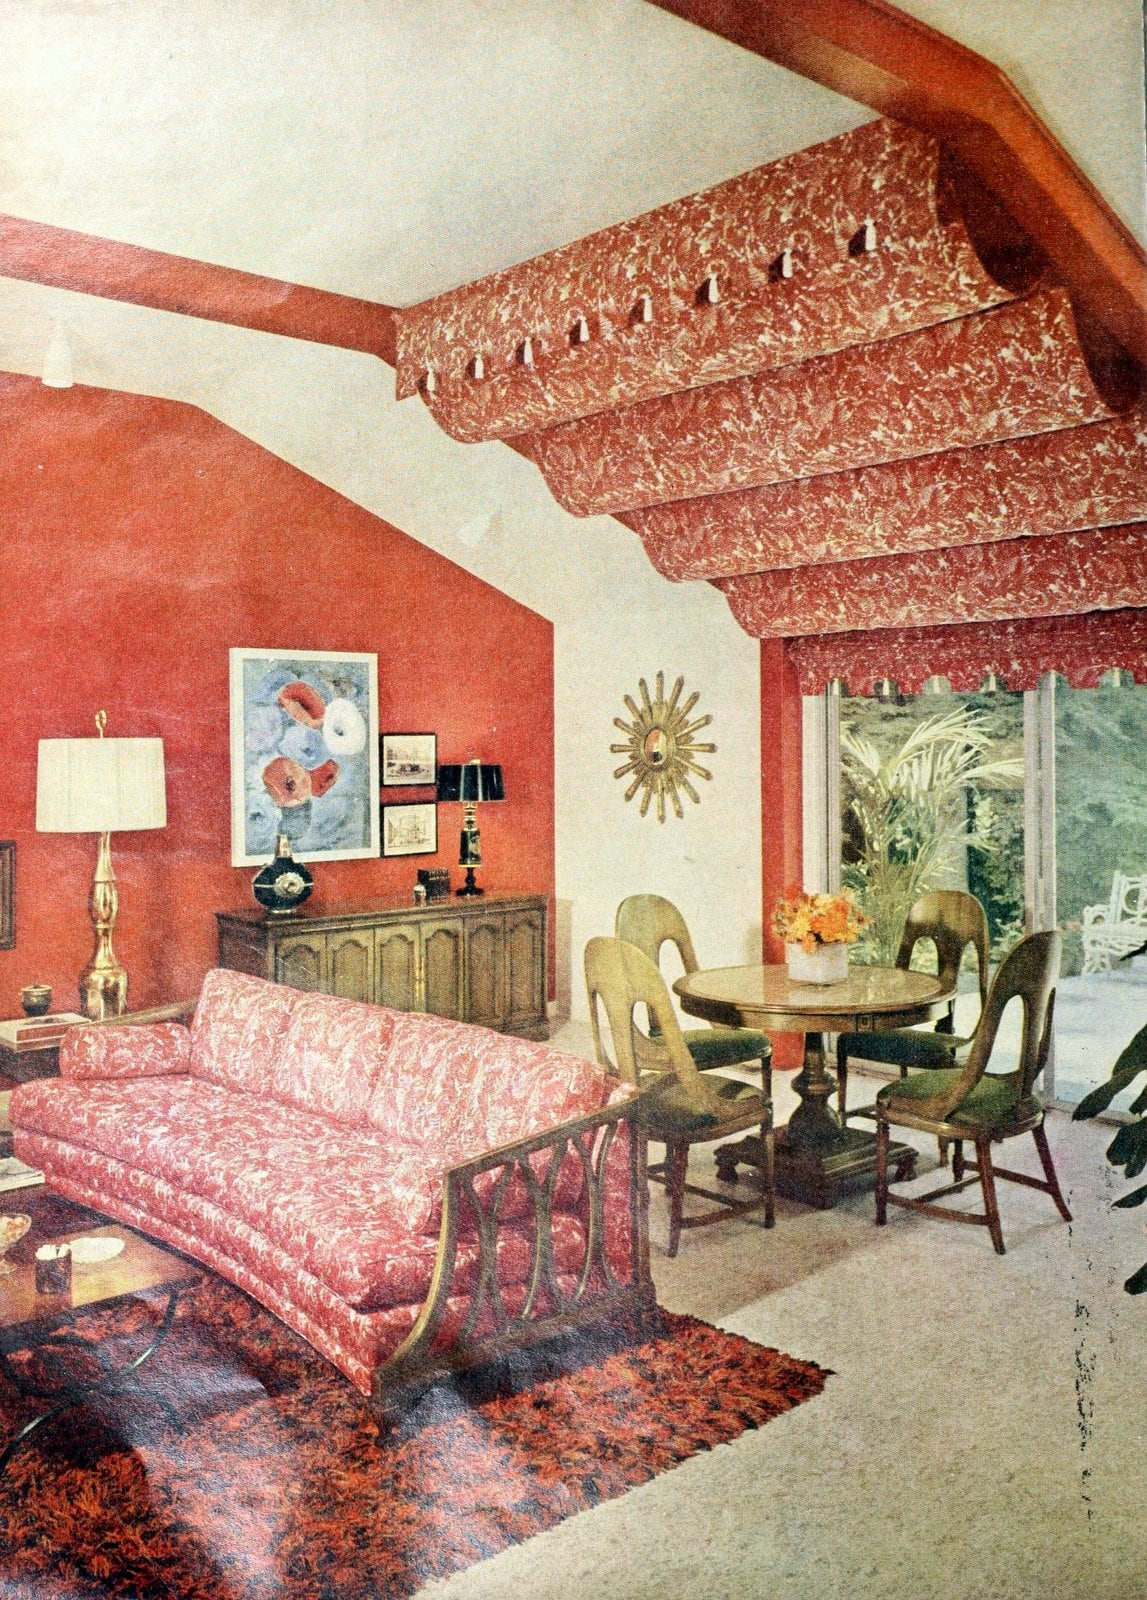 Vintage living room with mid-century floral soft furnishings (1962)